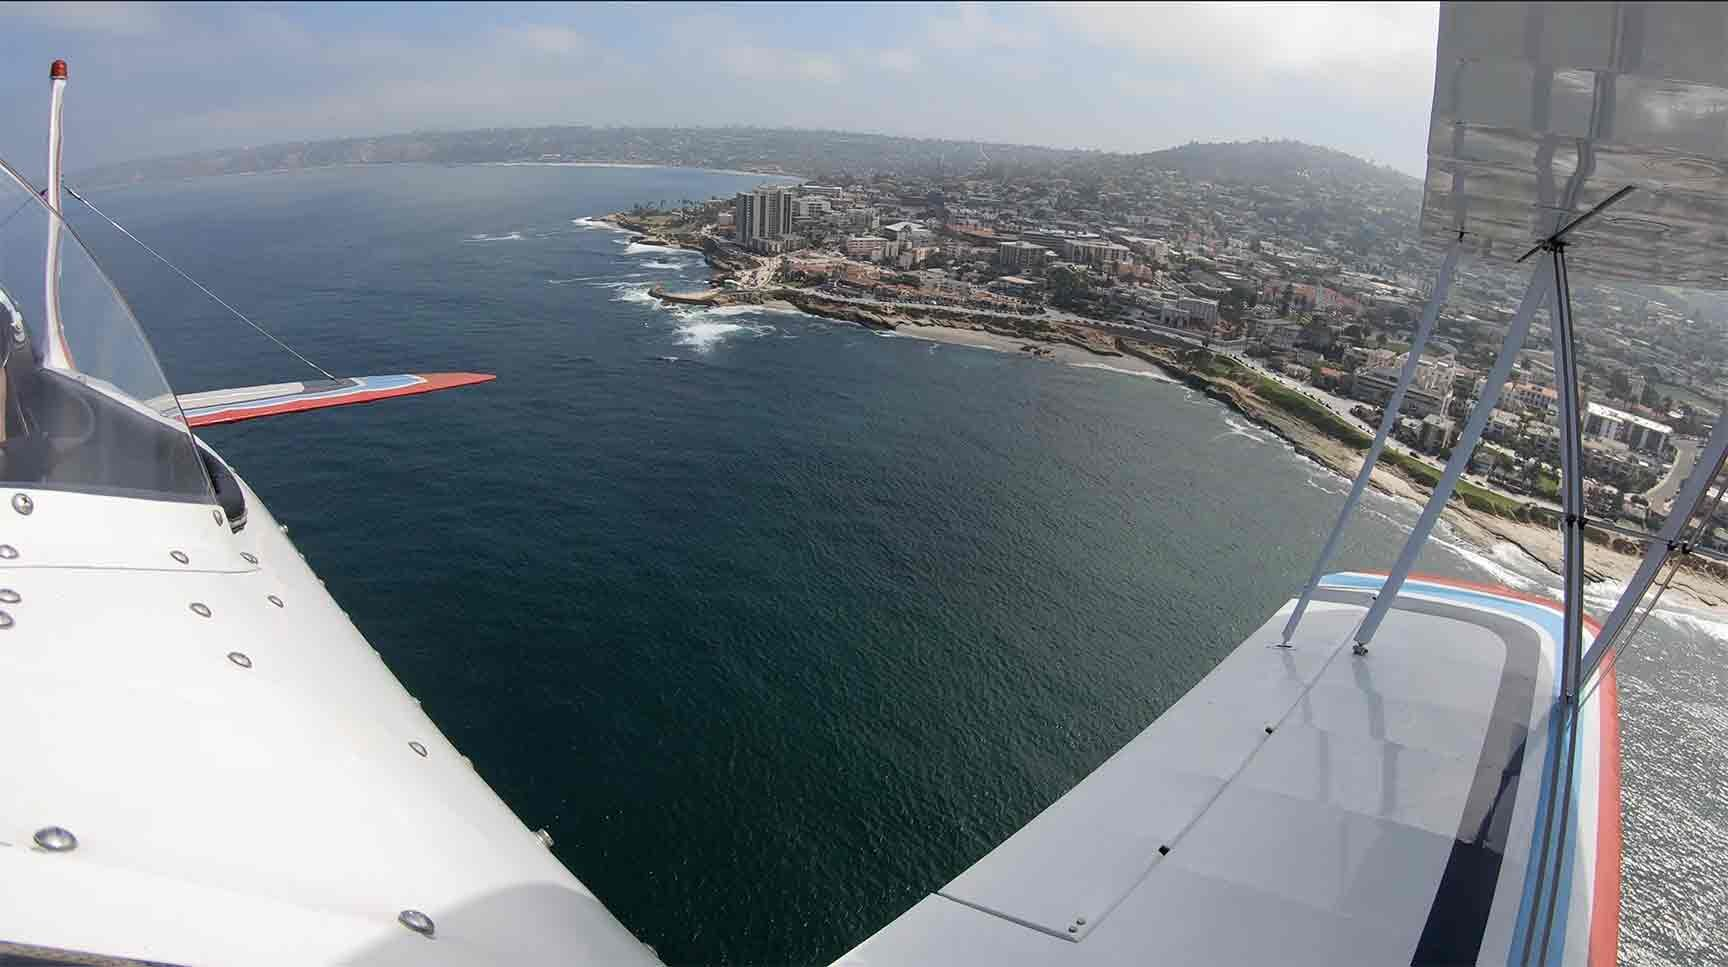 Just a snippet of the amazing views you will experience with this aircraft!